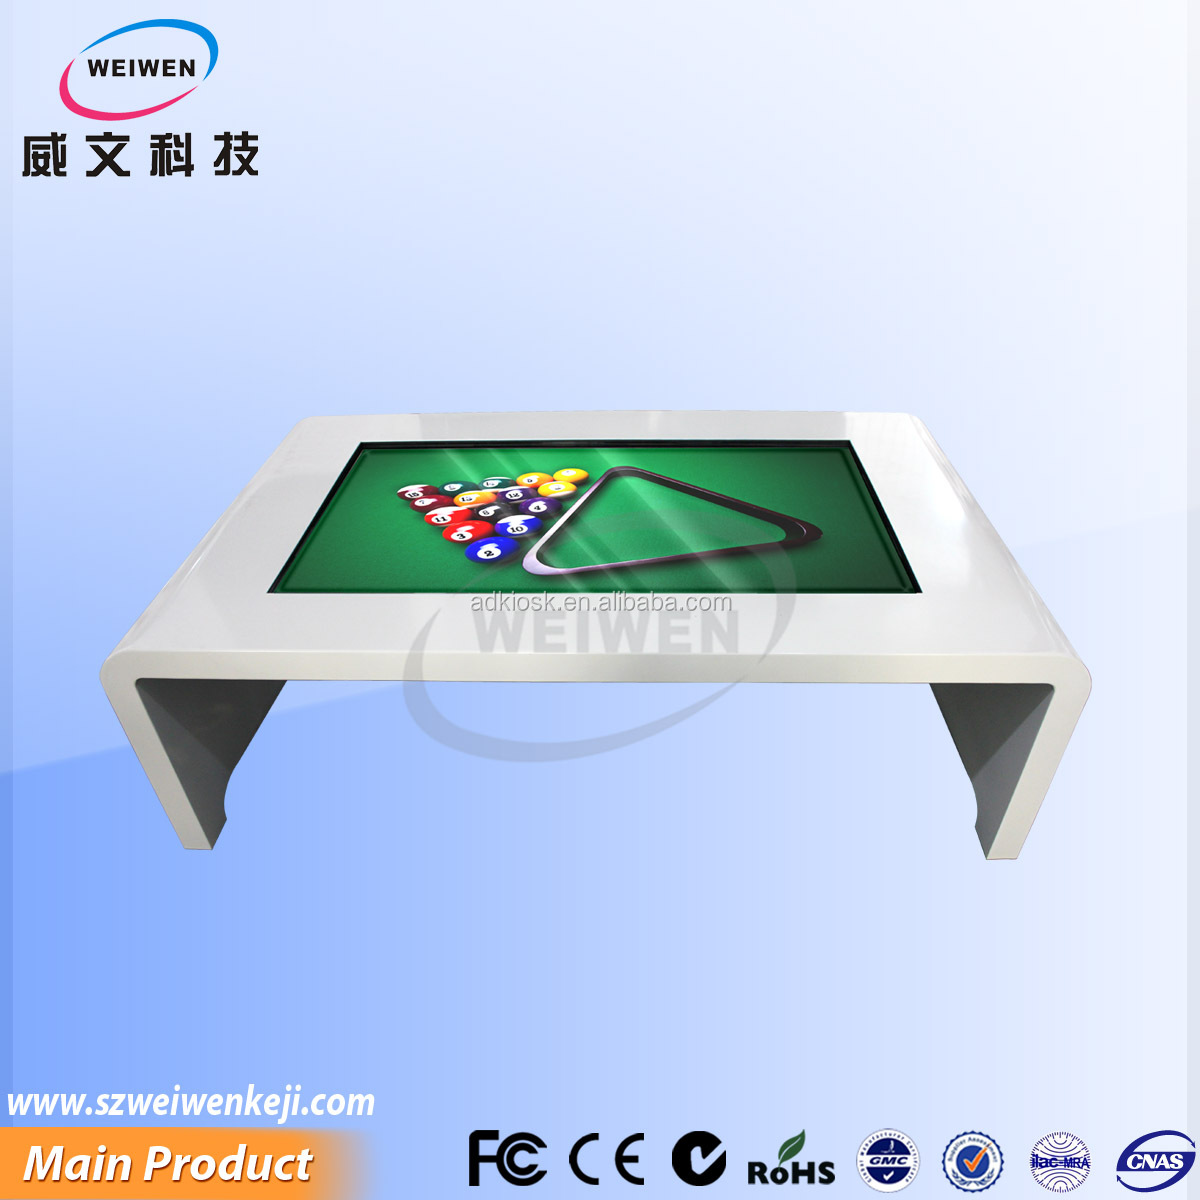 49 inch indoor led touch screen children game table media player table